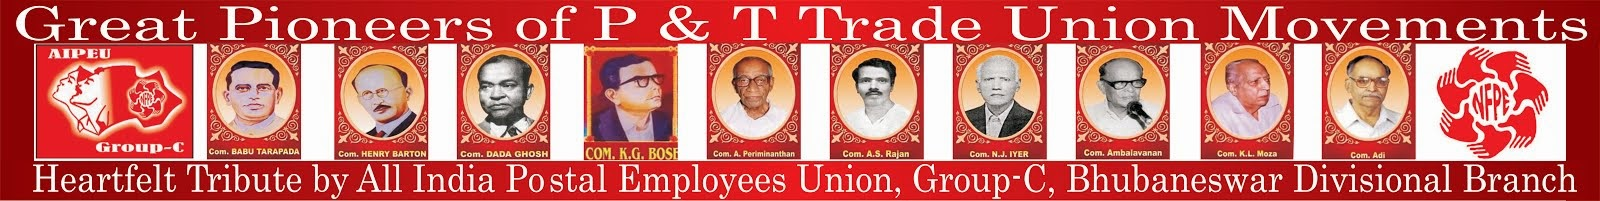 Pioneers of P&T Trade Union Movement